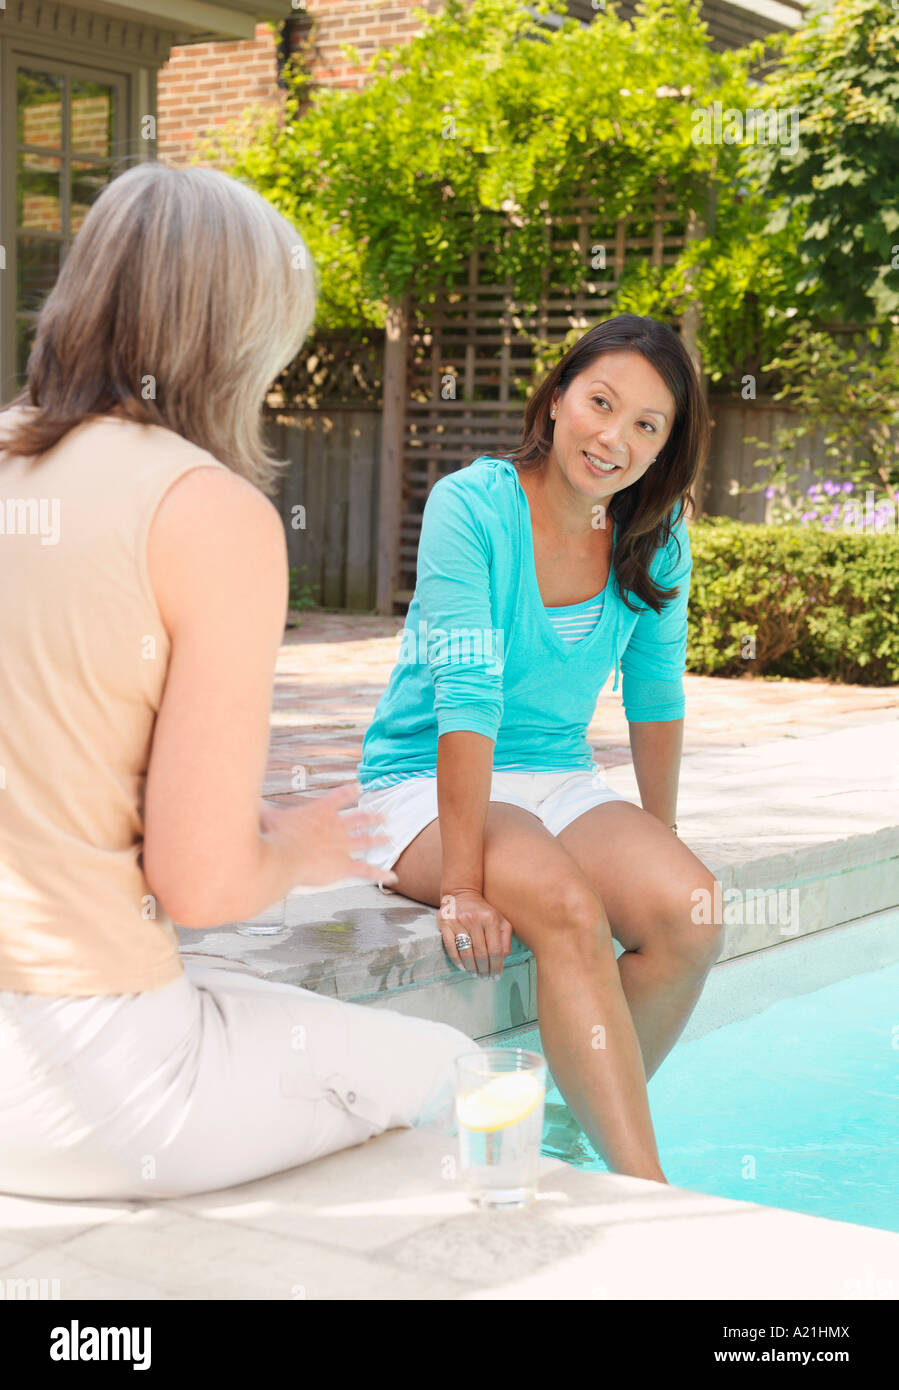 Women Sitting at Side of Pool Stock Photo